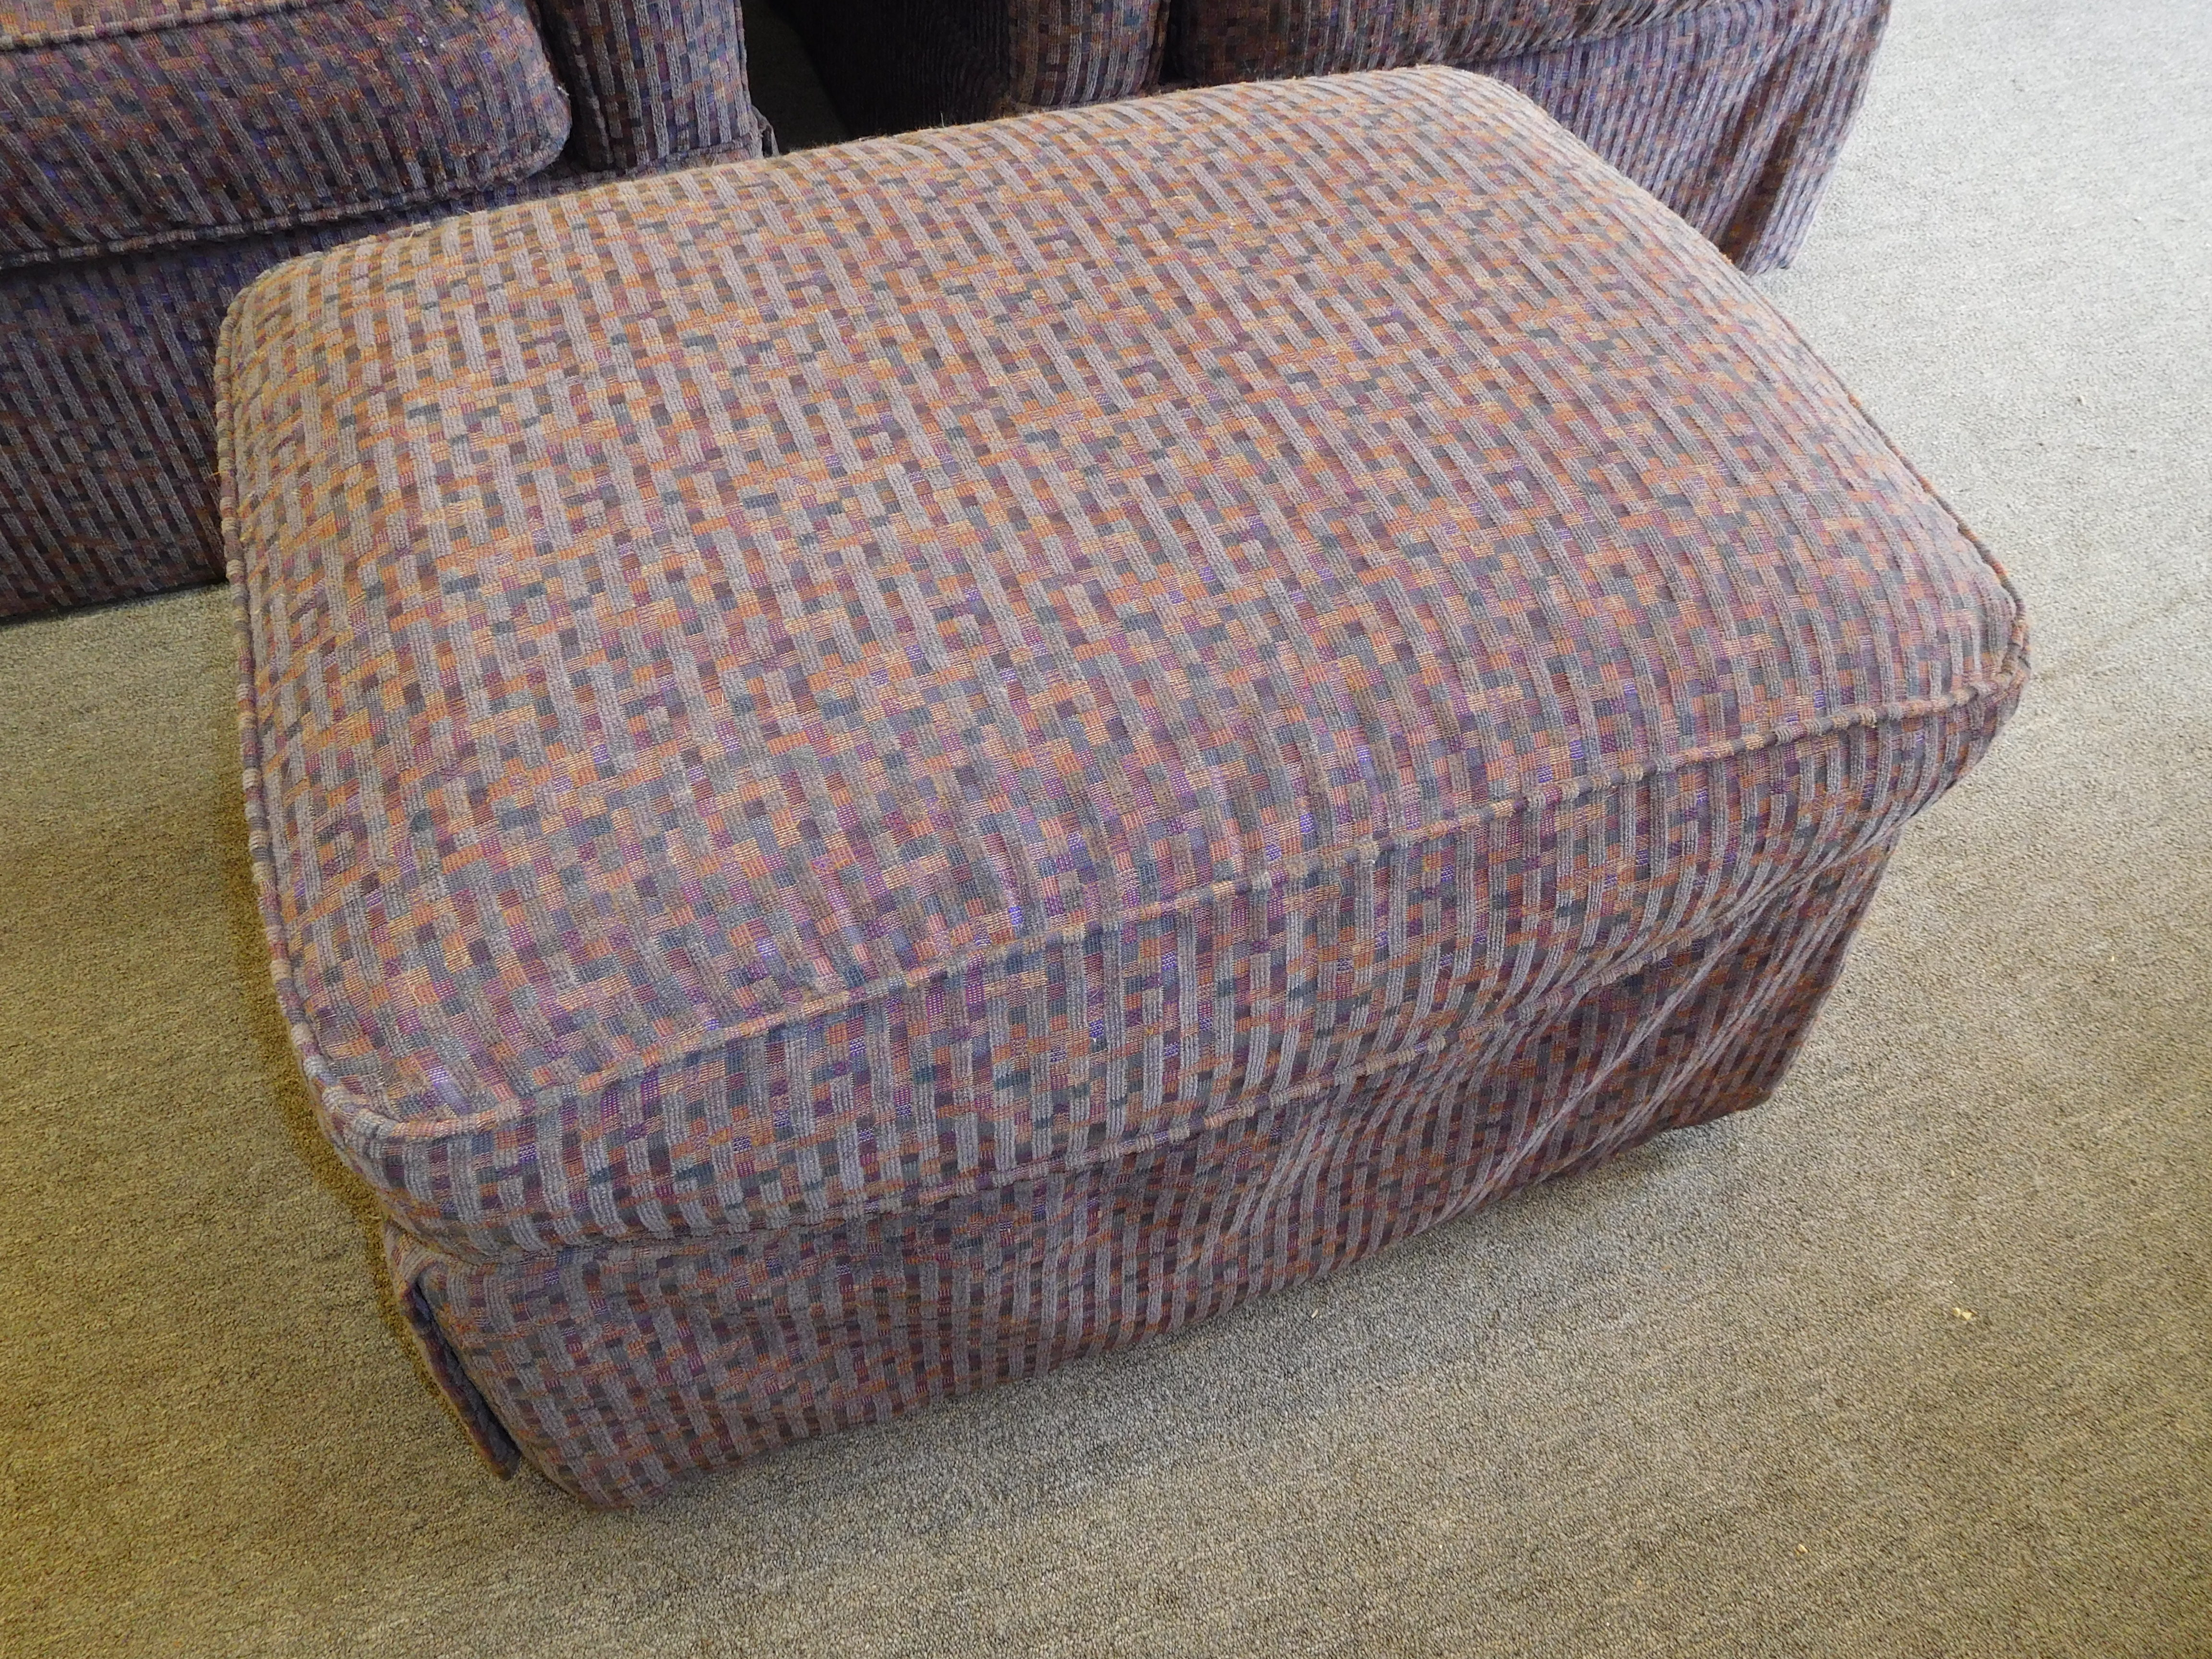 Lavender/Mauve Patterned Ottoman By Rowe